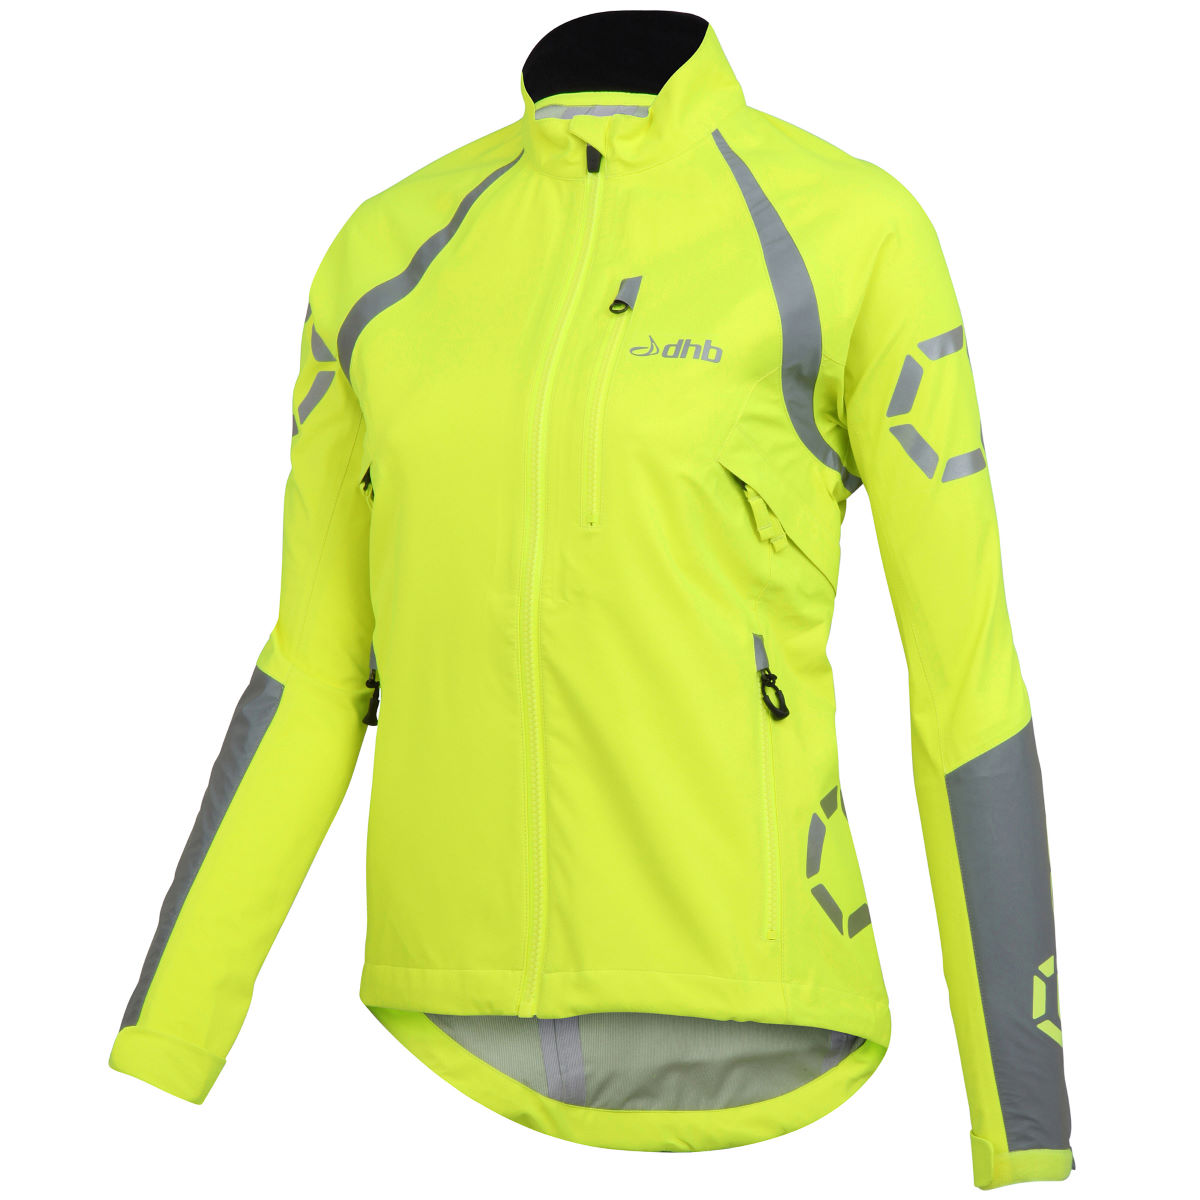 Veste Femme dhb Flashlight Force (imperméable) - 16 UK Fluro Yellow